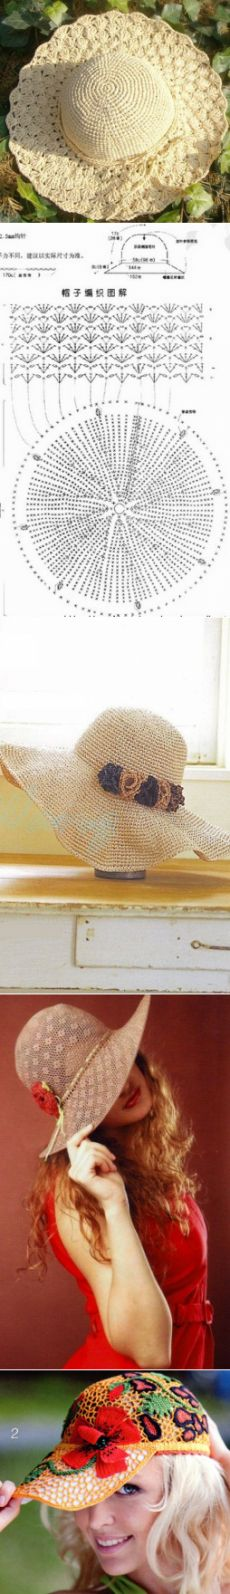 Knitted summer hat